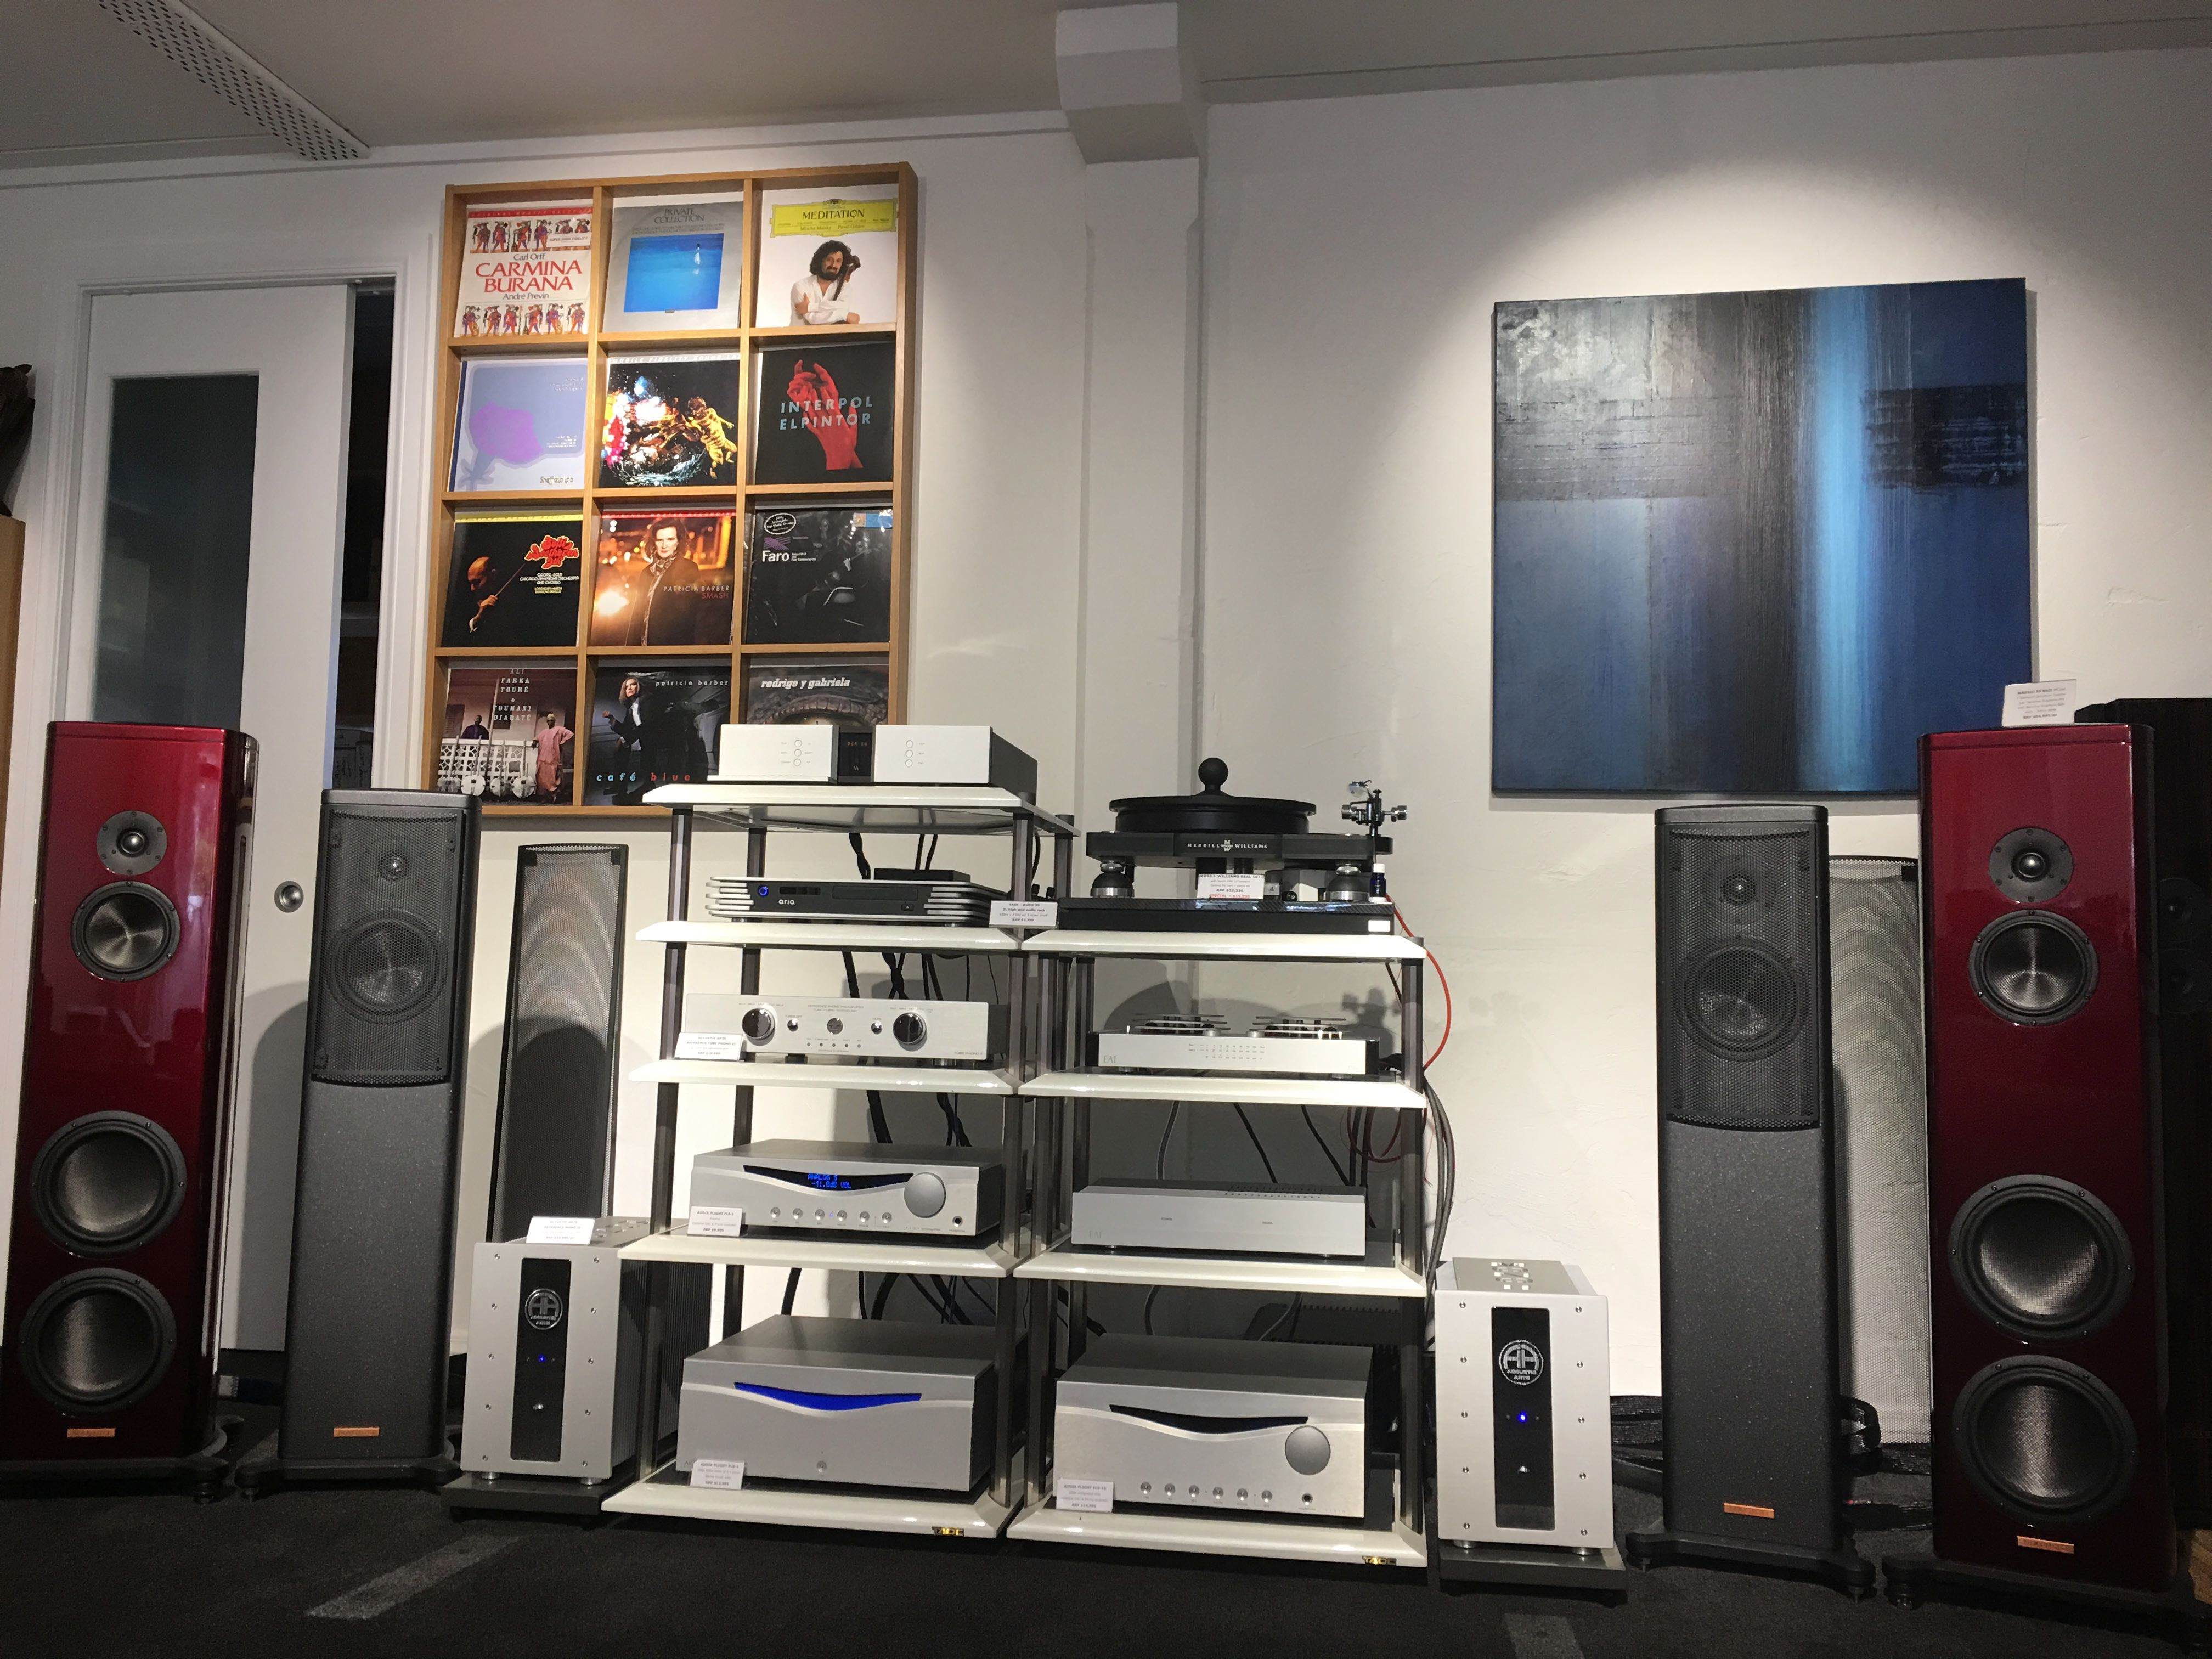 Hifi Rack Nz Hot Sounds In Or Near The City Witchdoctor Co Nz